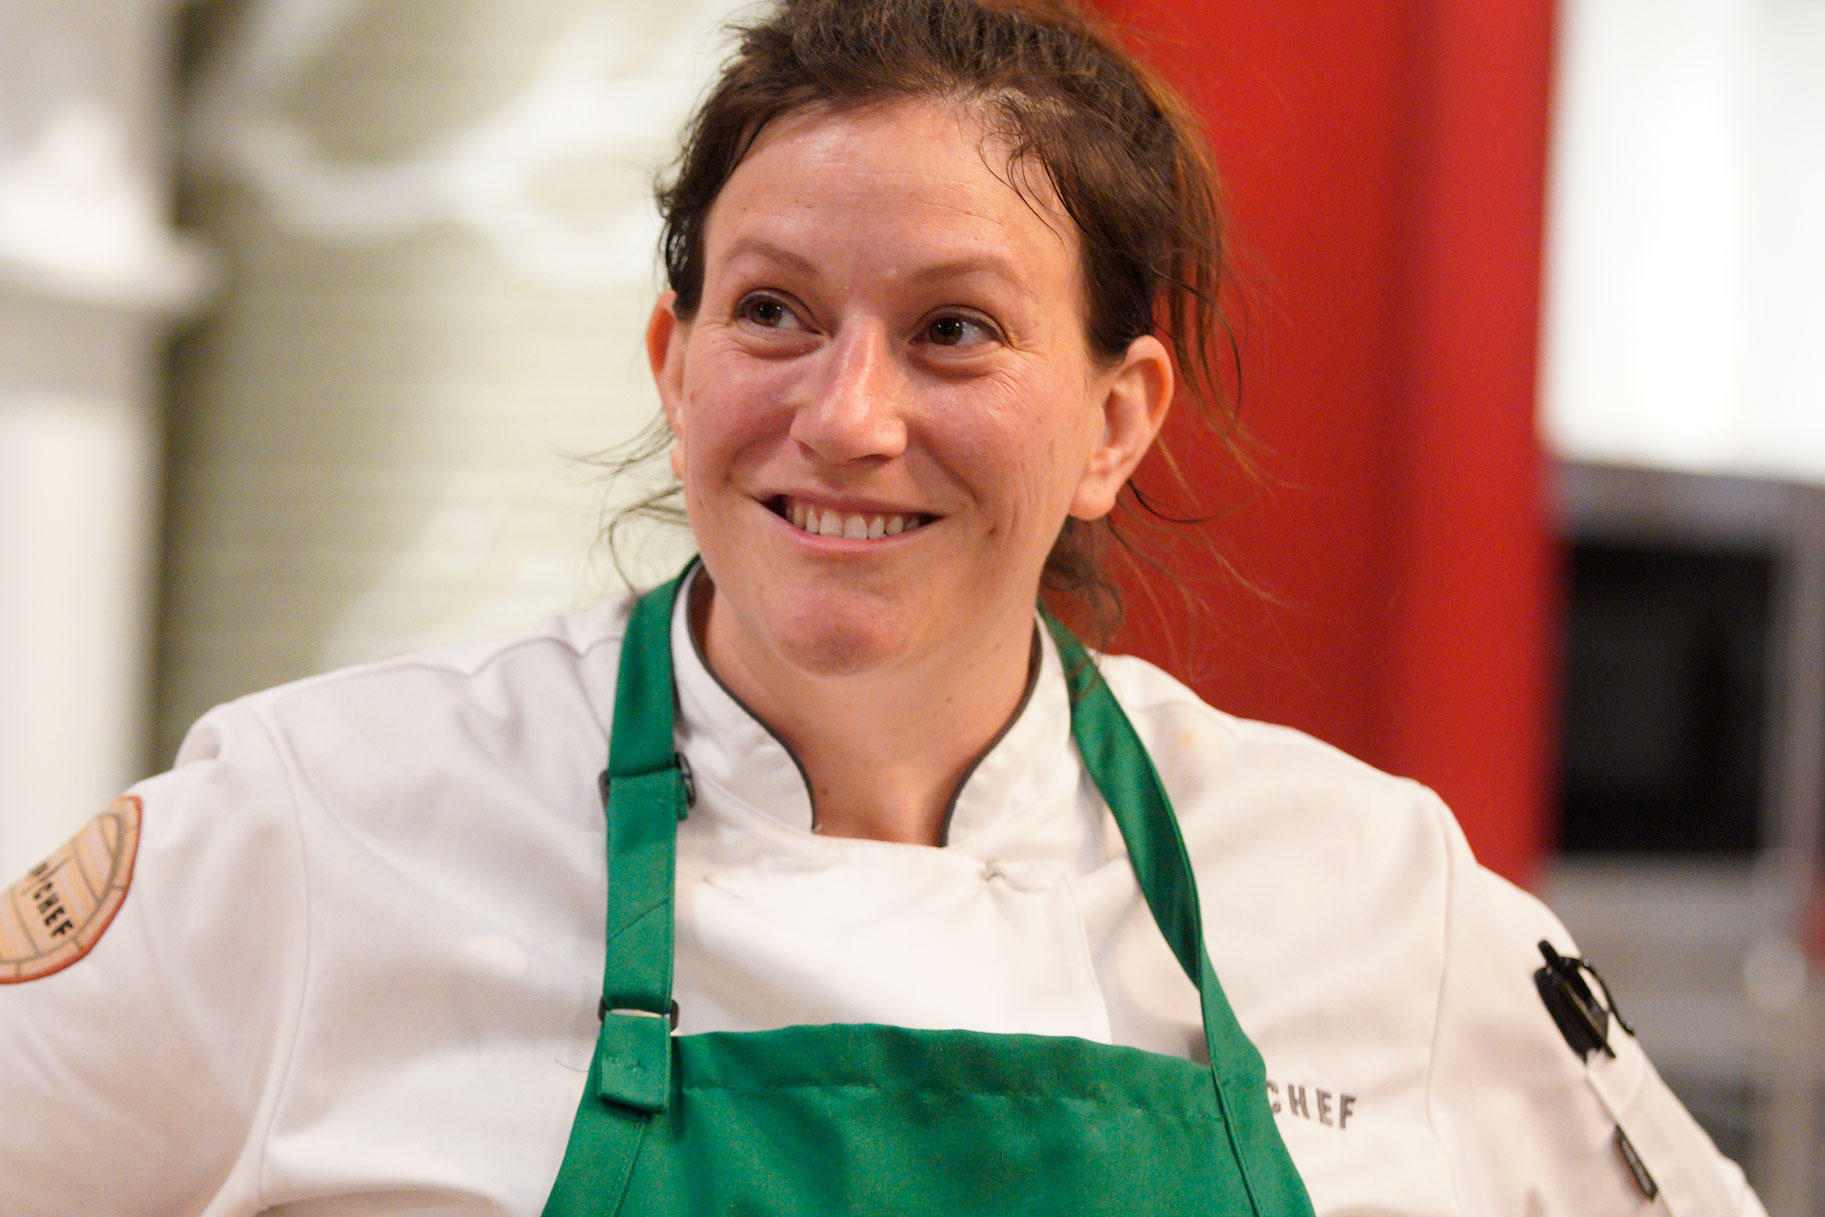 Bravo's Top Chef Season 16 Runner-up Sara Bradley